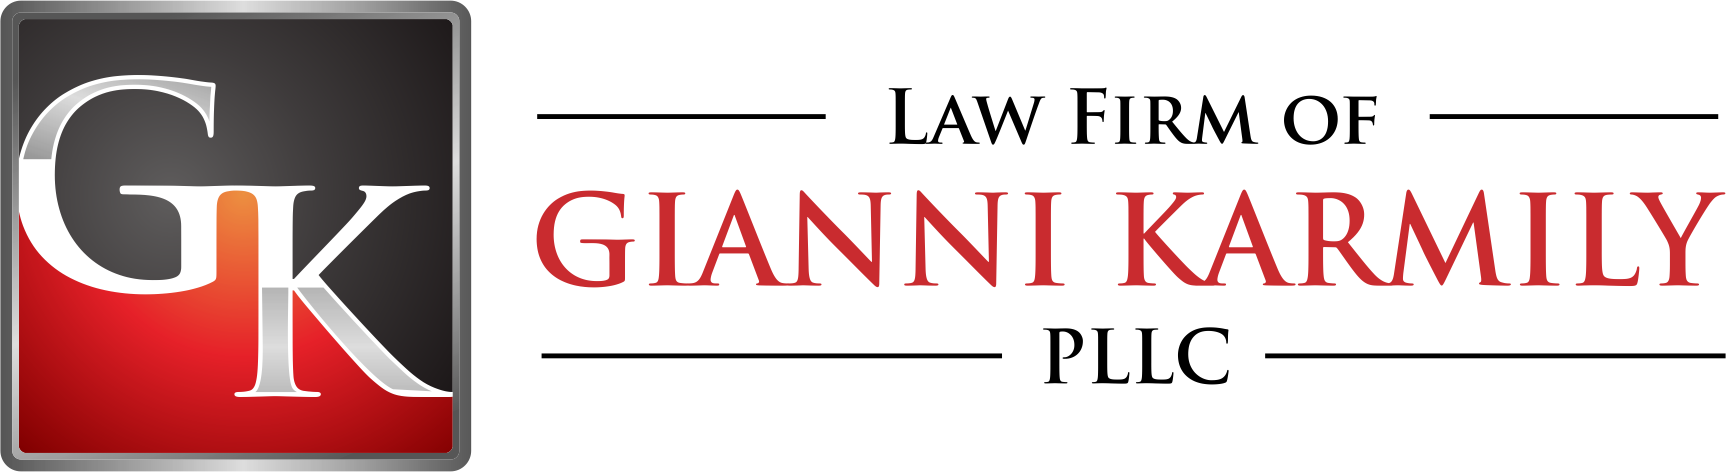 Law Firm of Gianni Karmily, PLLC is the Trusted Criminal Justice Attorney Law Firm in Great Neck, NY